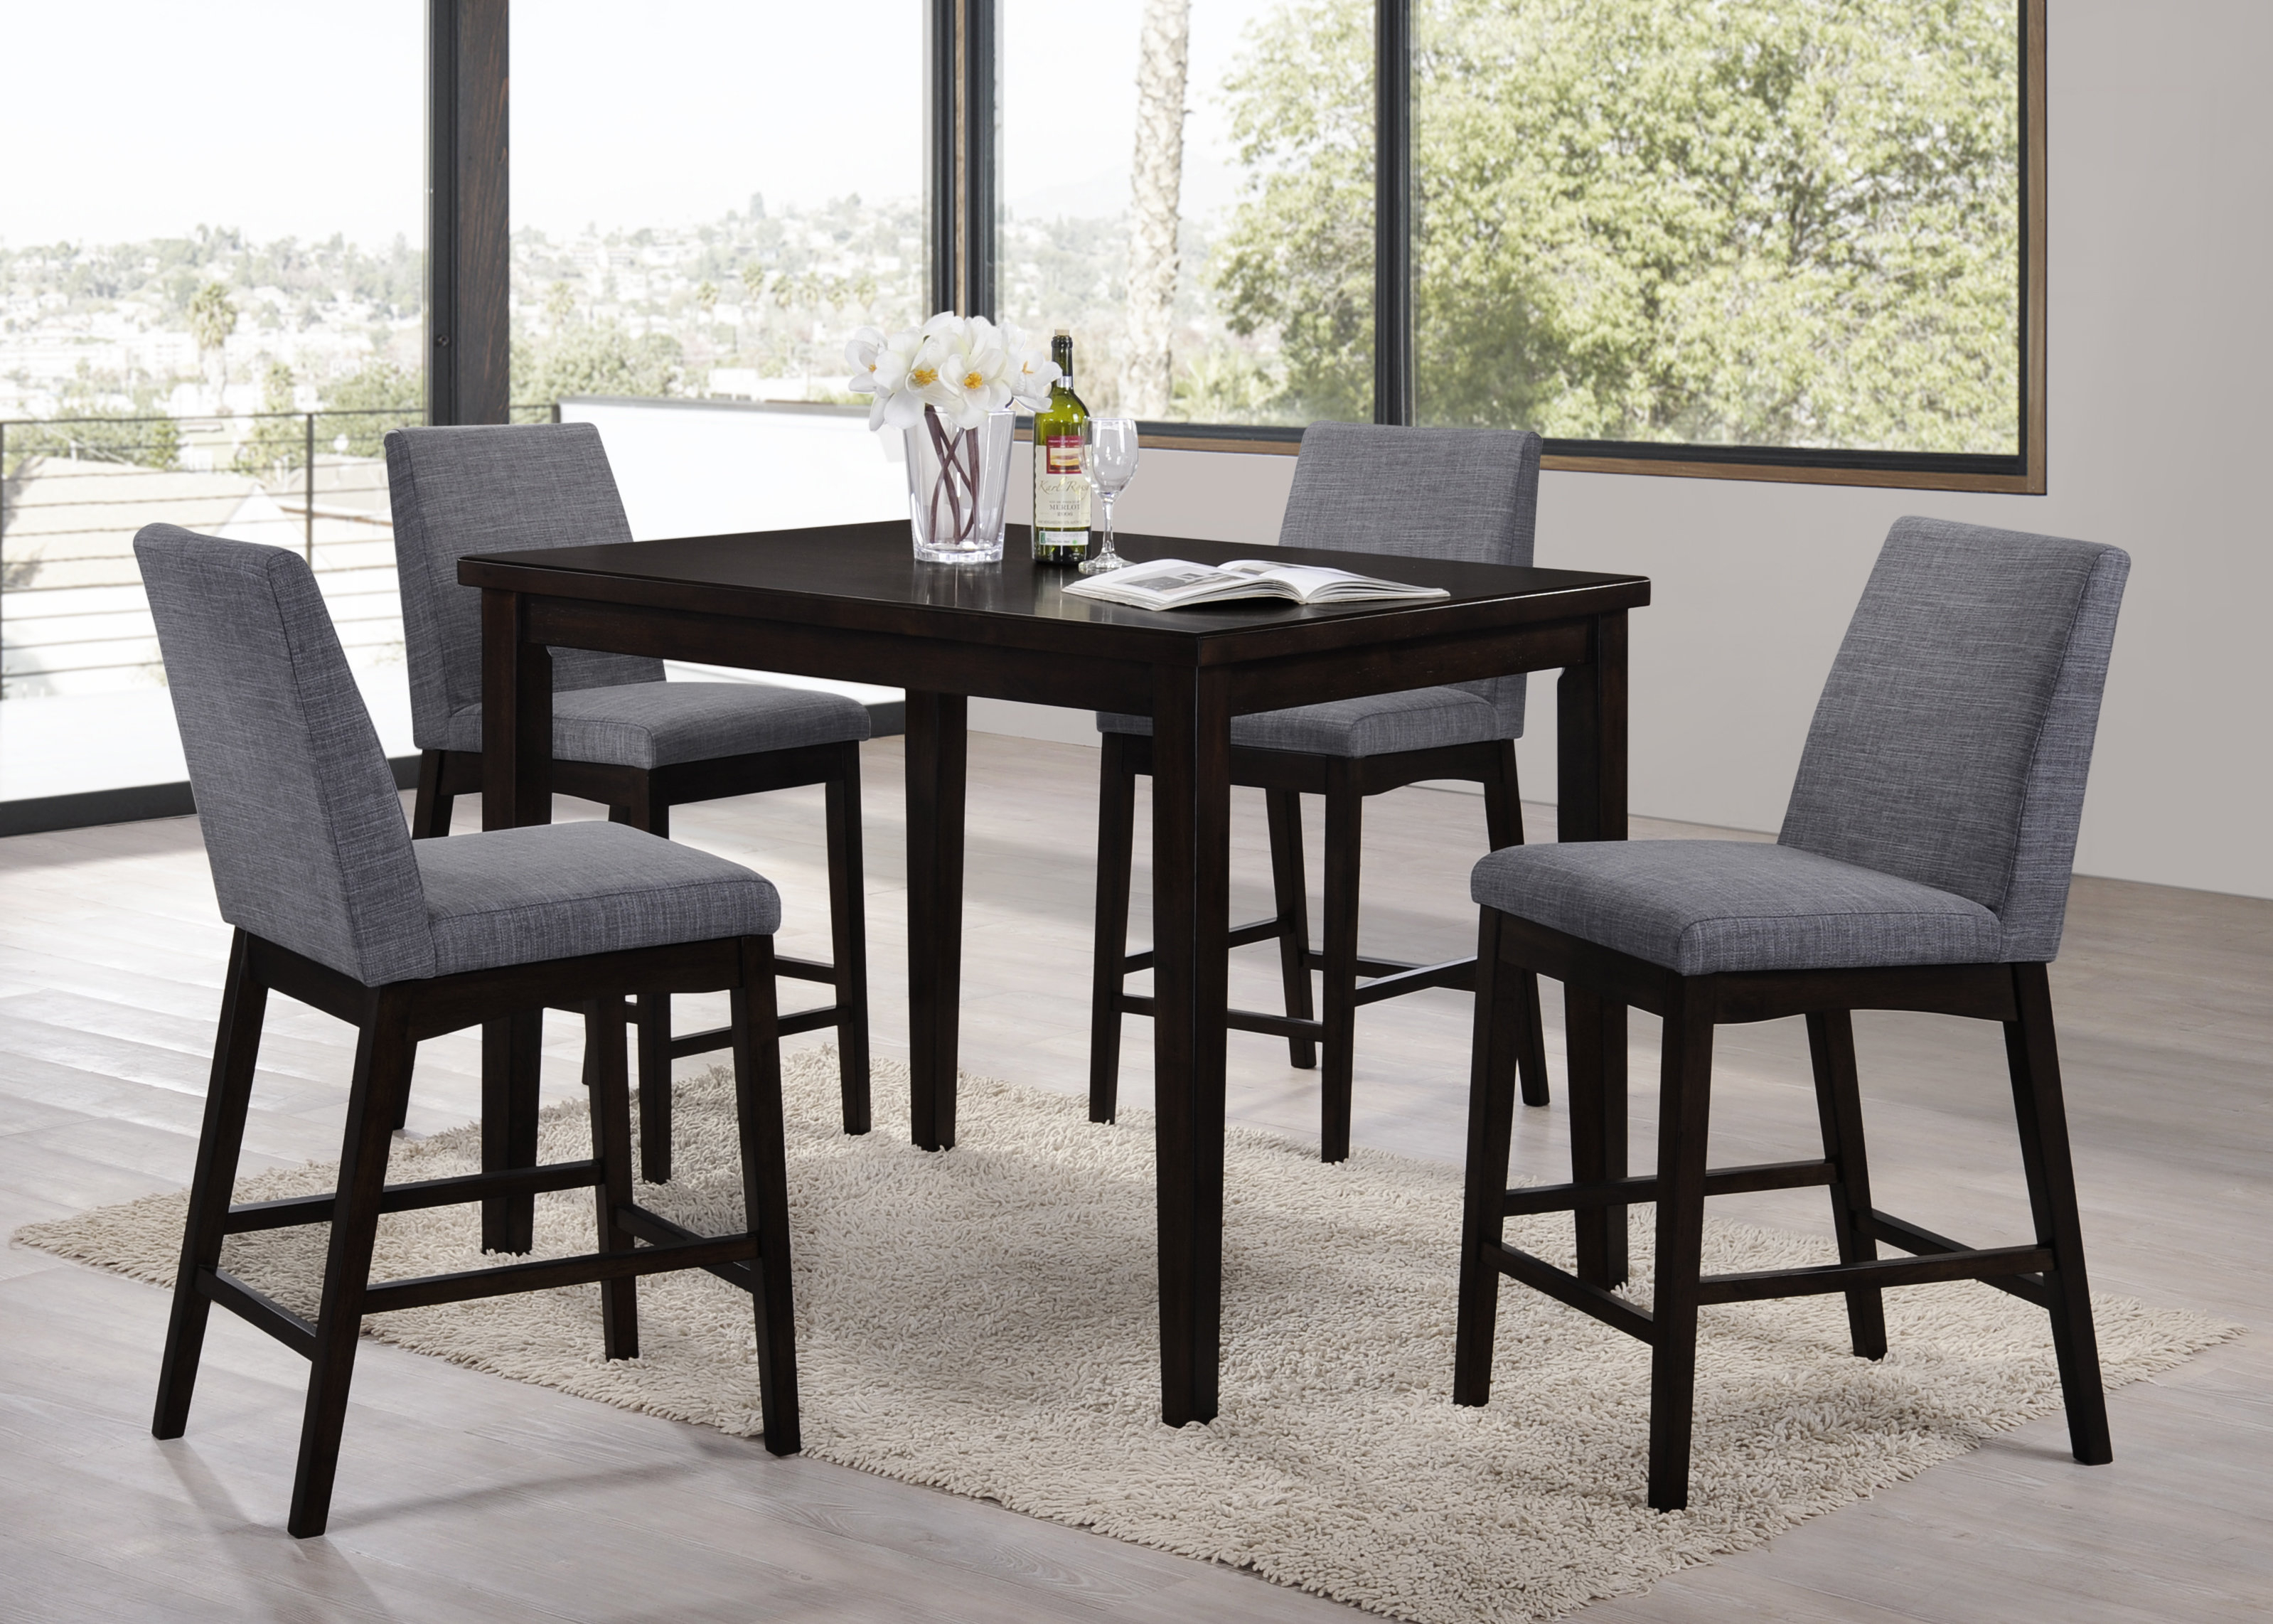 Erdman 5 Piece Bar Height Dining Set For Newest Tenney 3 Piece Counter Height Dining Sets (View 10 of 20)